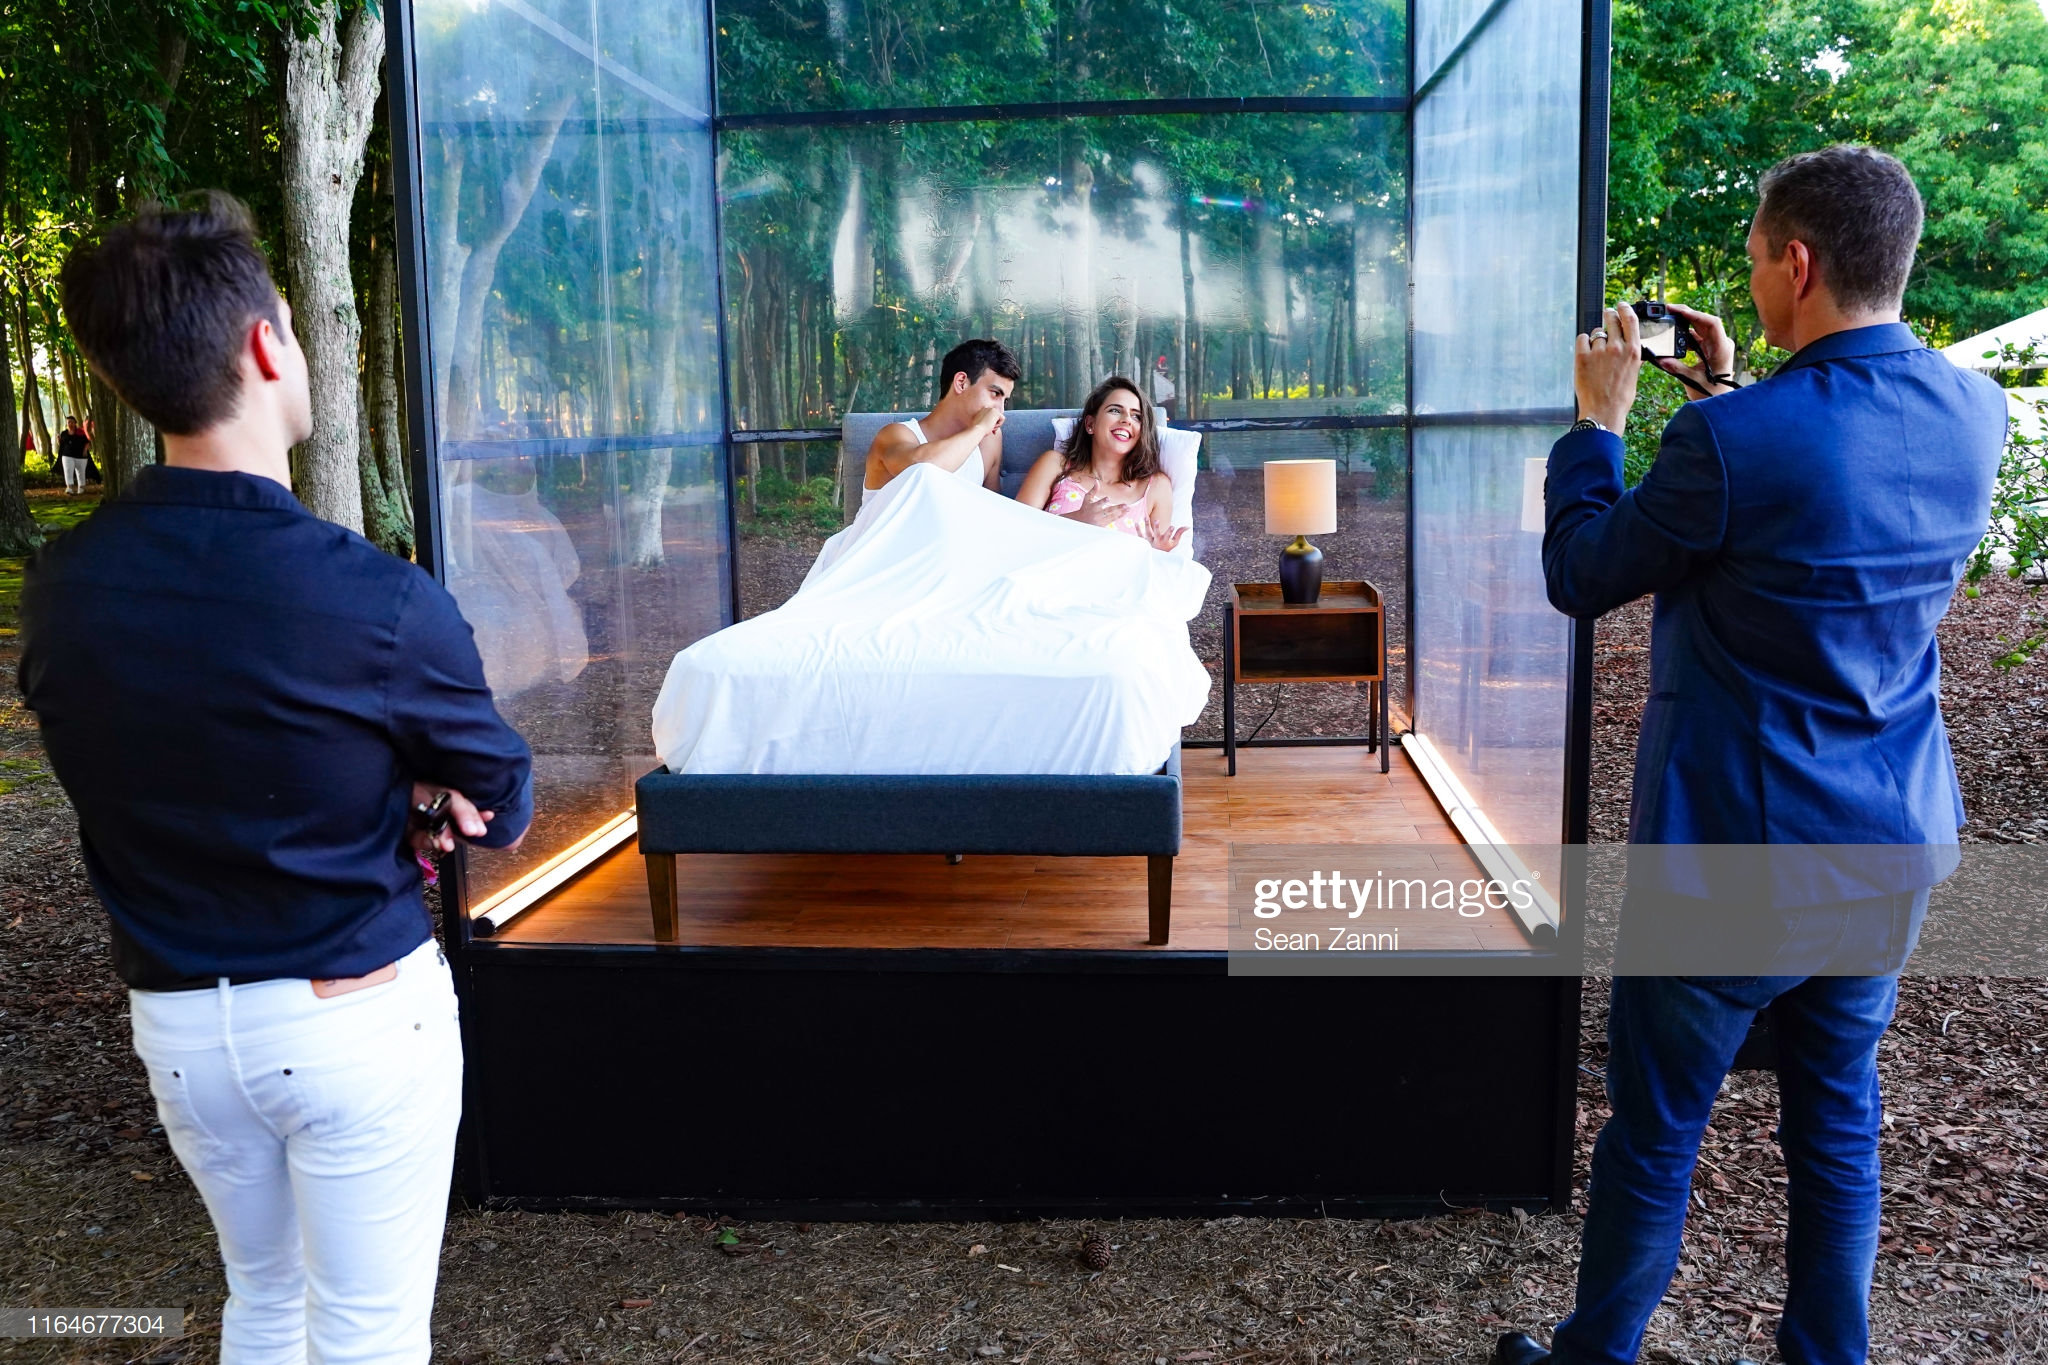 gettyimages-1164677304-2048x2048.jpg